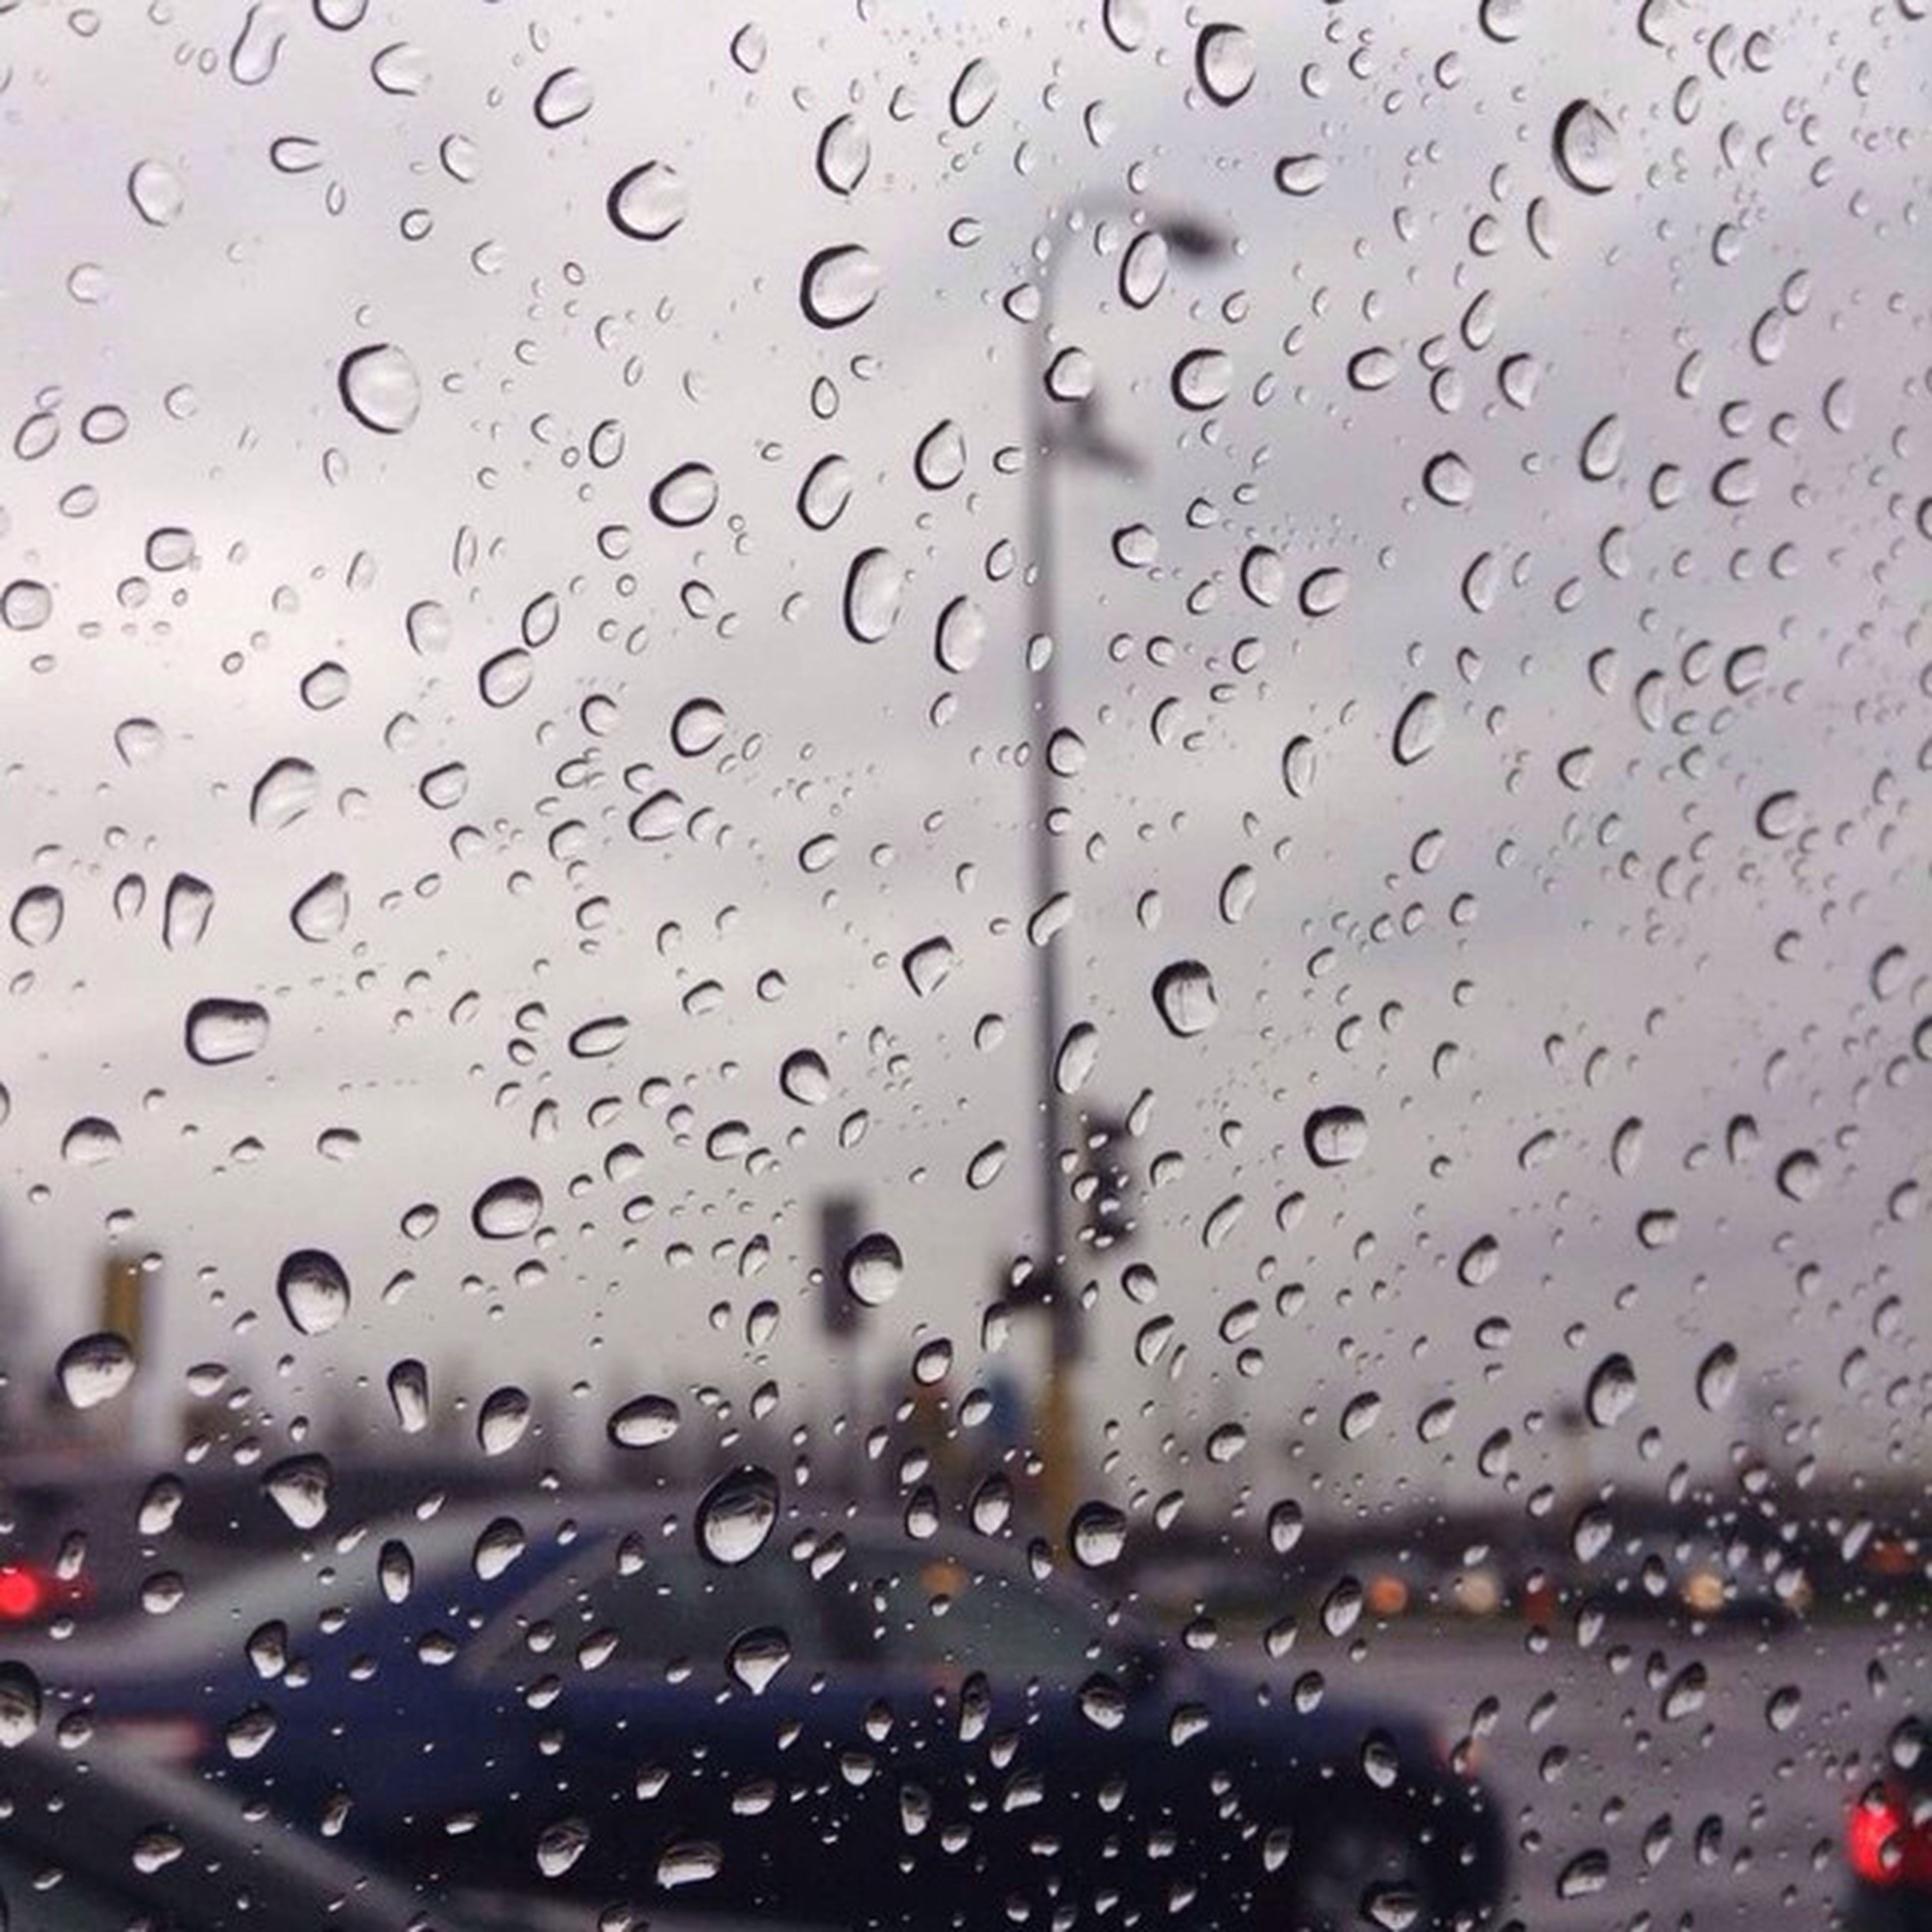 drop, window, rain, mode of transport, land vehicle, weather, season, water, full frame, windshield, backgrounds, road, sky, monsoon, no people, close-up, focus on foreground, droplet, day, nature, overcast